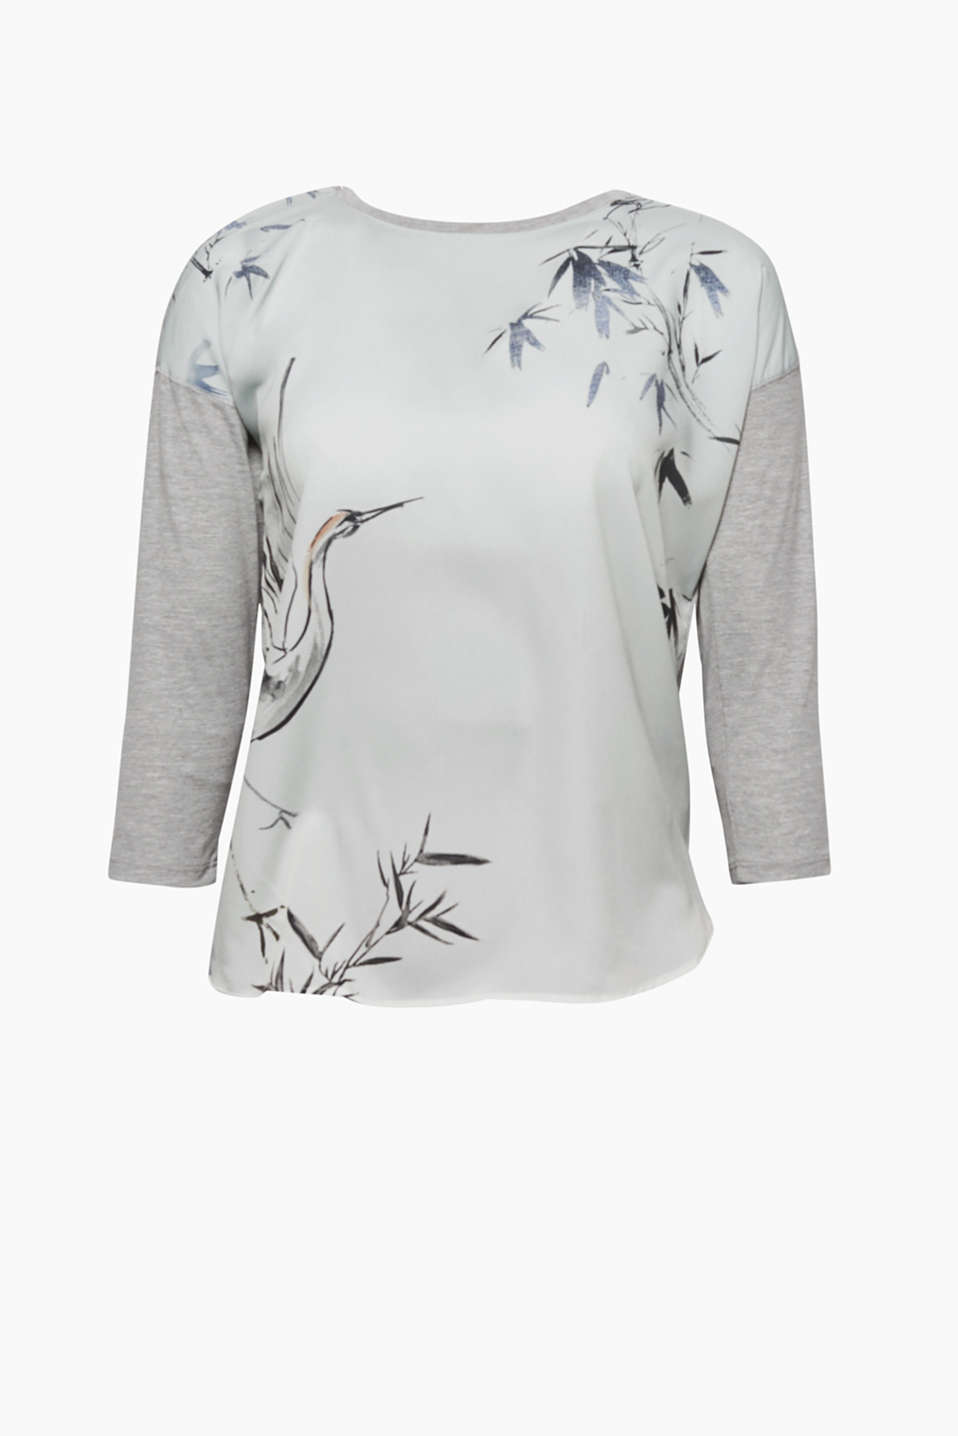 Heres your new favourite shirt: in an Asian style, made from a mix of materials and with a decorative print!